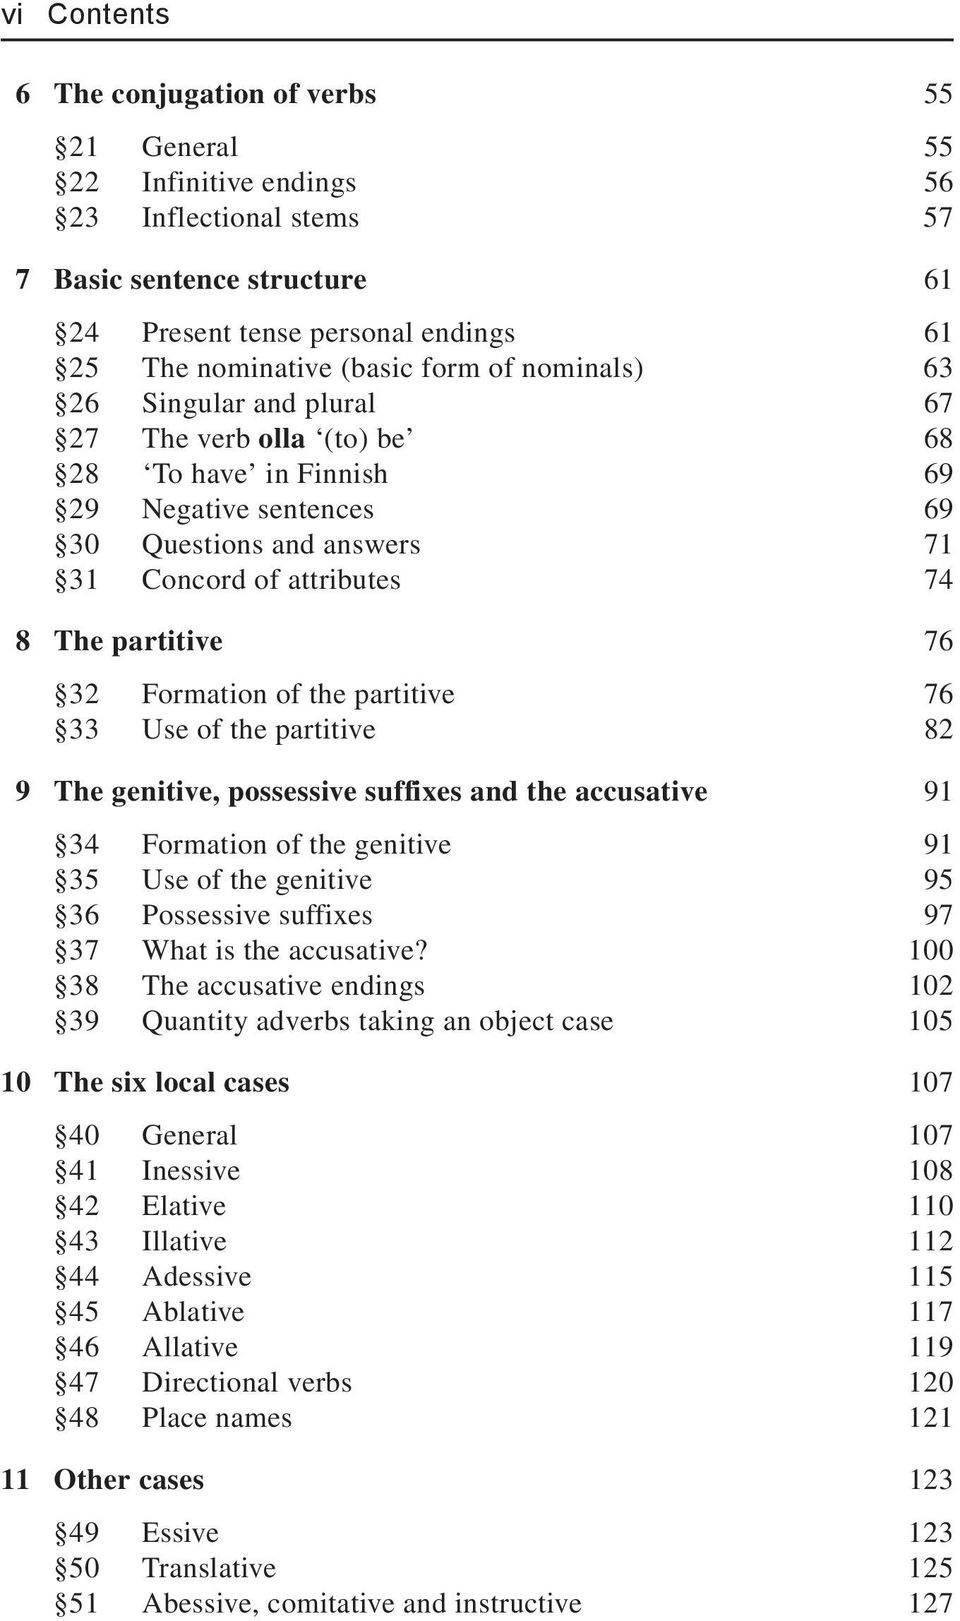 32 Formation of the partitive 76 33 Use of the partitive 82 9 The genitive, possessive suffixes and the accusative 91 34 Formation of the genitive 91 35 Use of the genitive 95 36 Possessive suffixes